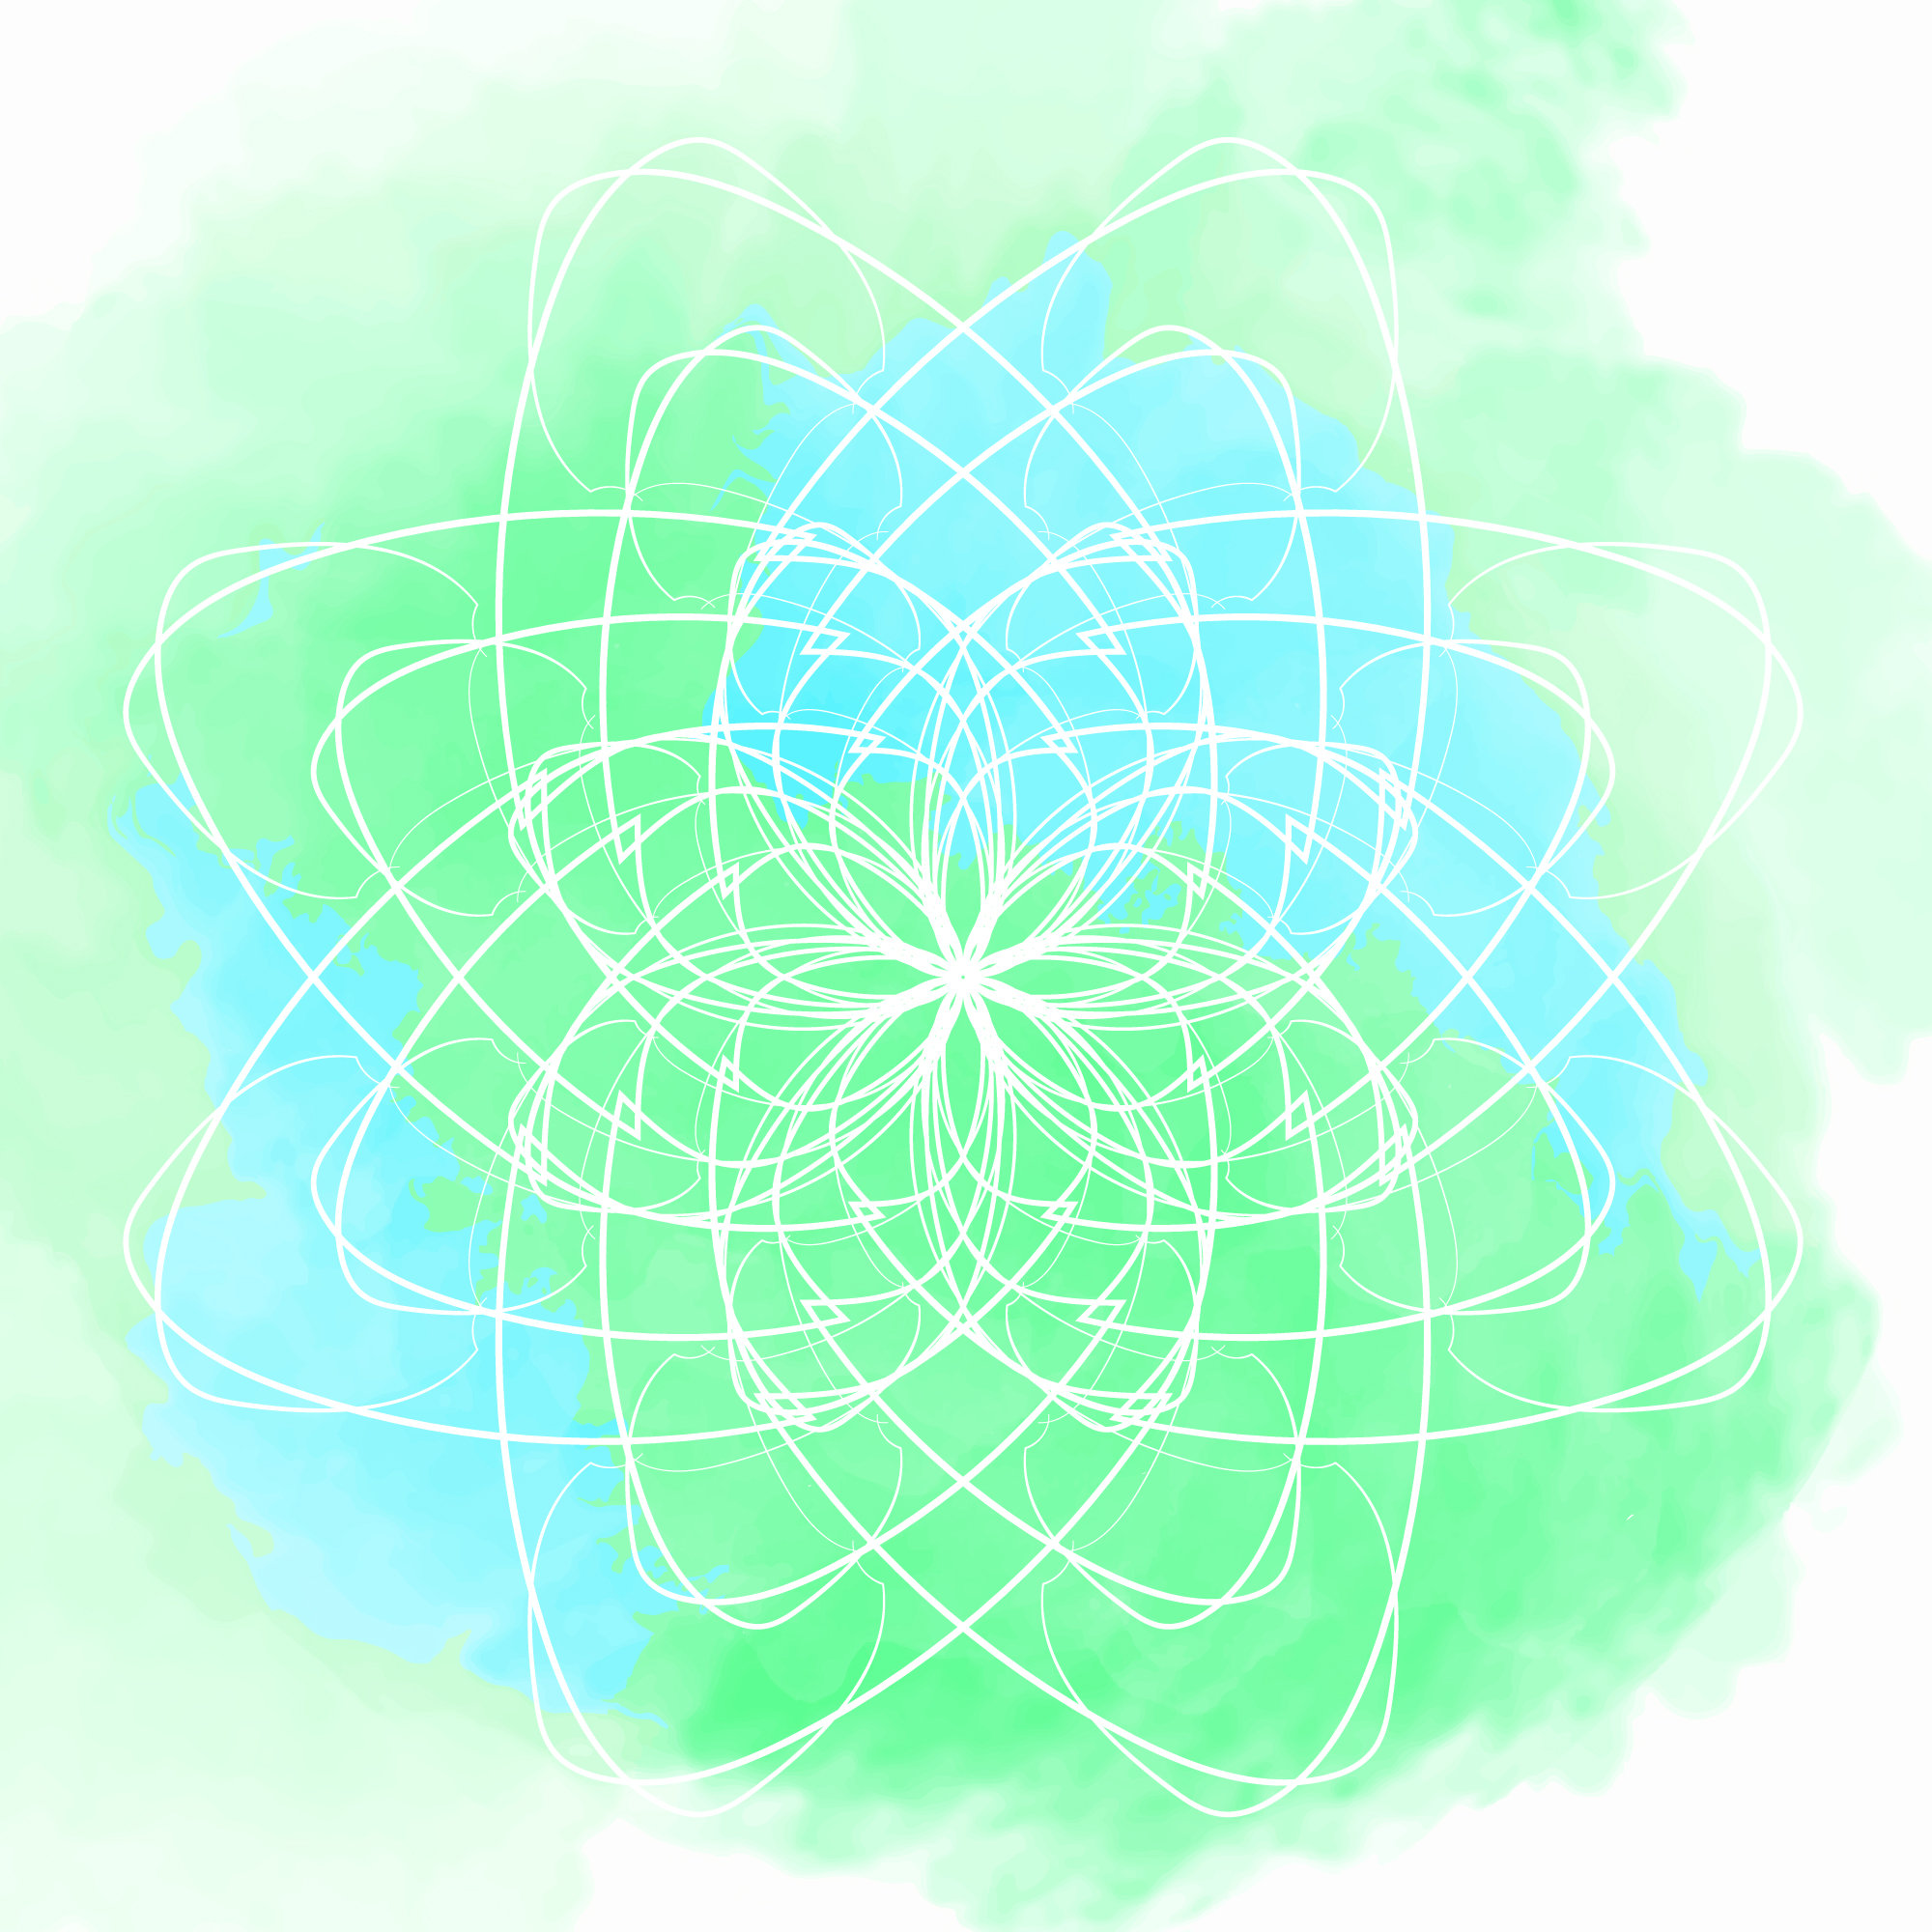 Green and blue watercolor background with flower mandala